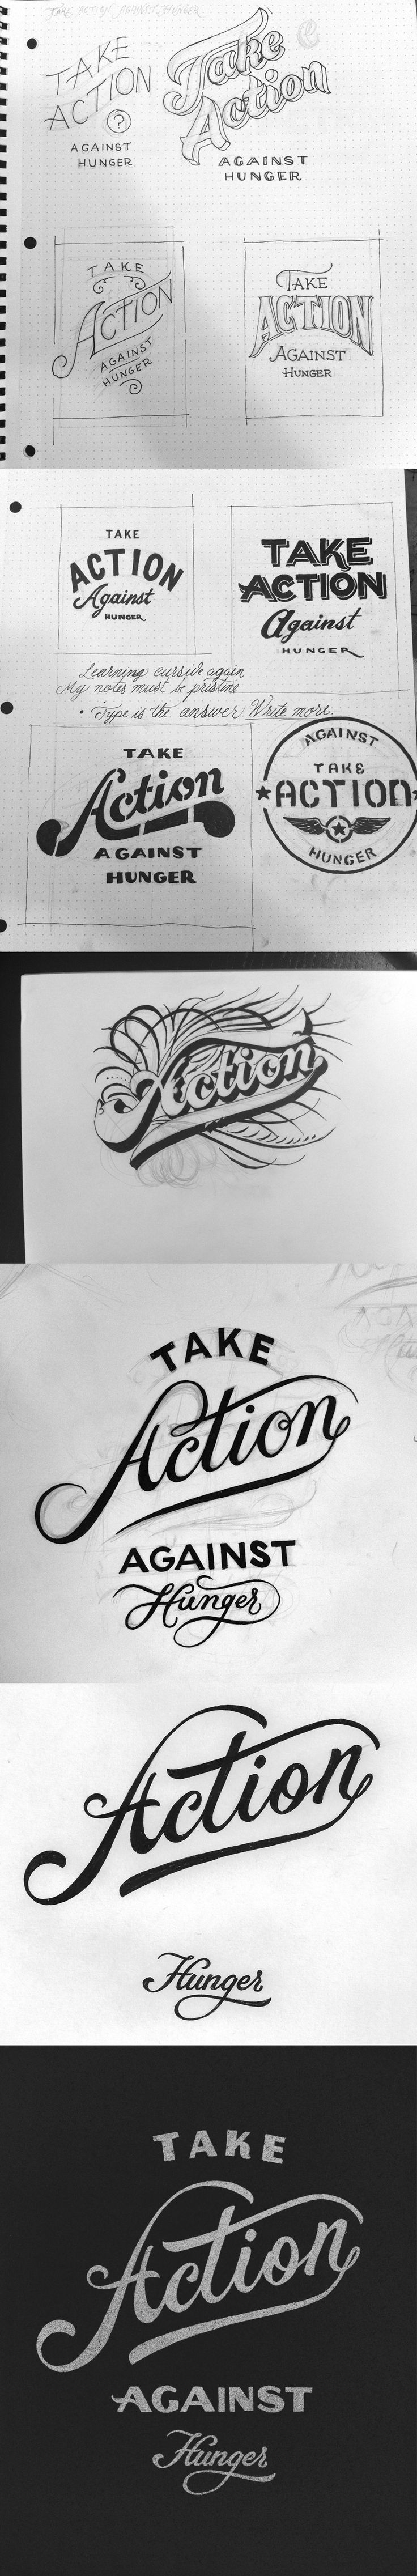 Take-action-large